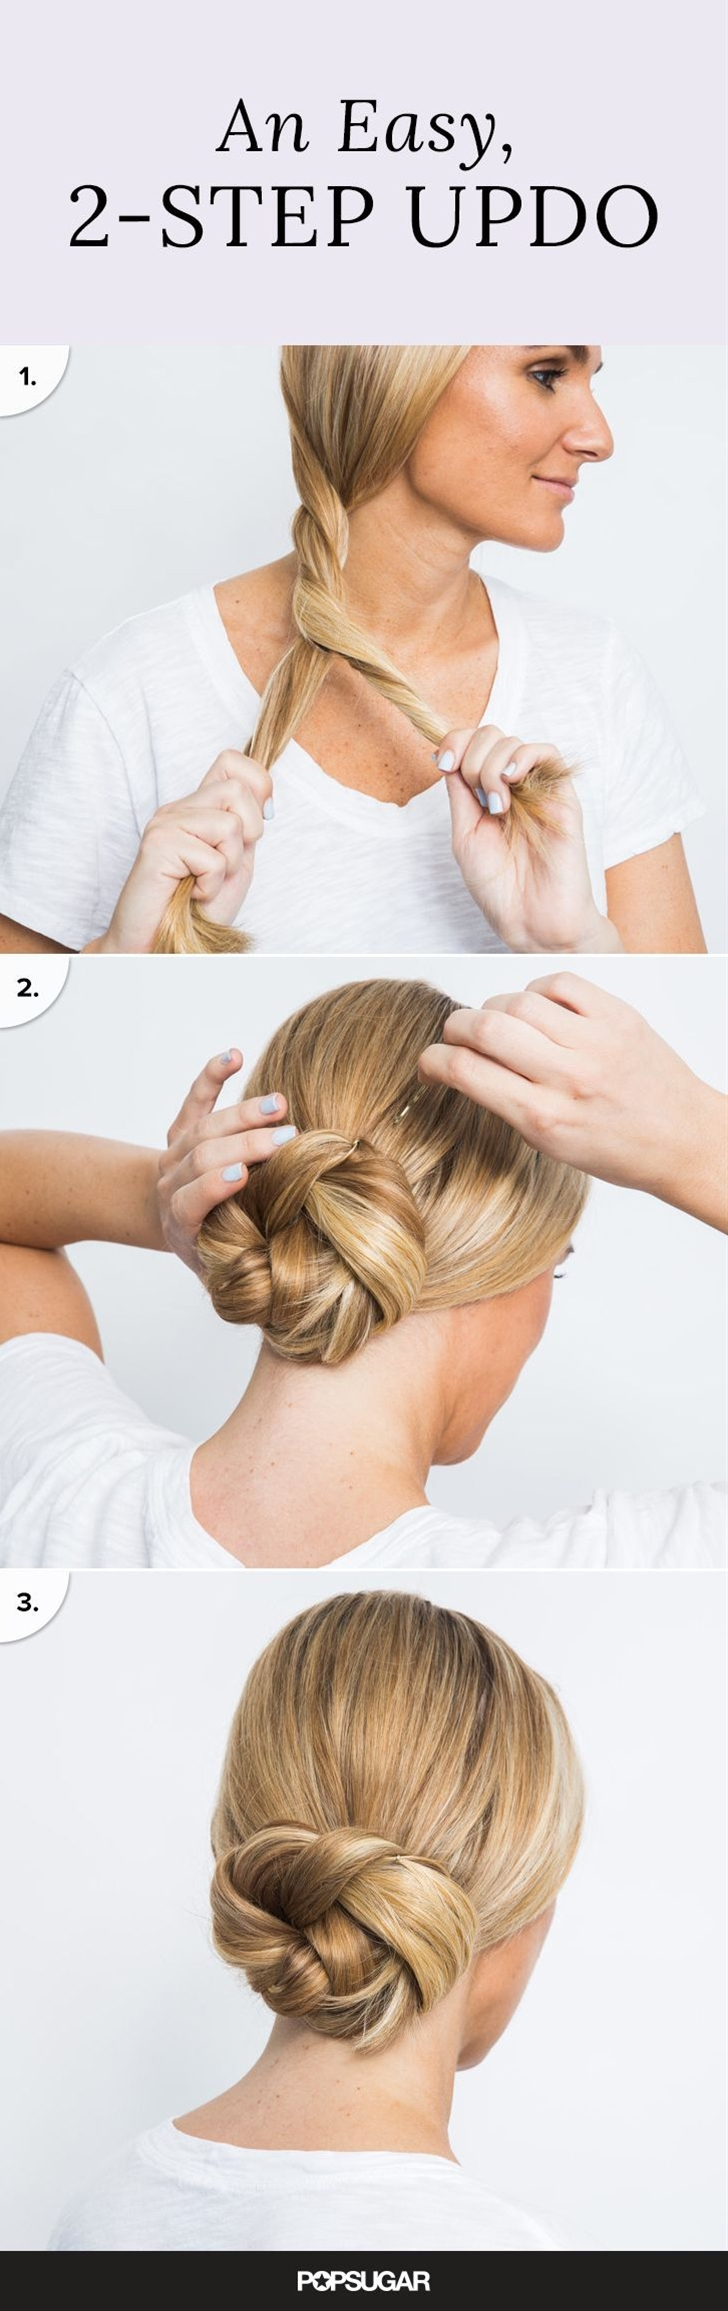 Updos don't have to be complicated! David showed us a two-step hairstyle you can literally pull off in two minutes. Start by splitting your hair into two equal sections, and then wind your strands into a thick twist.